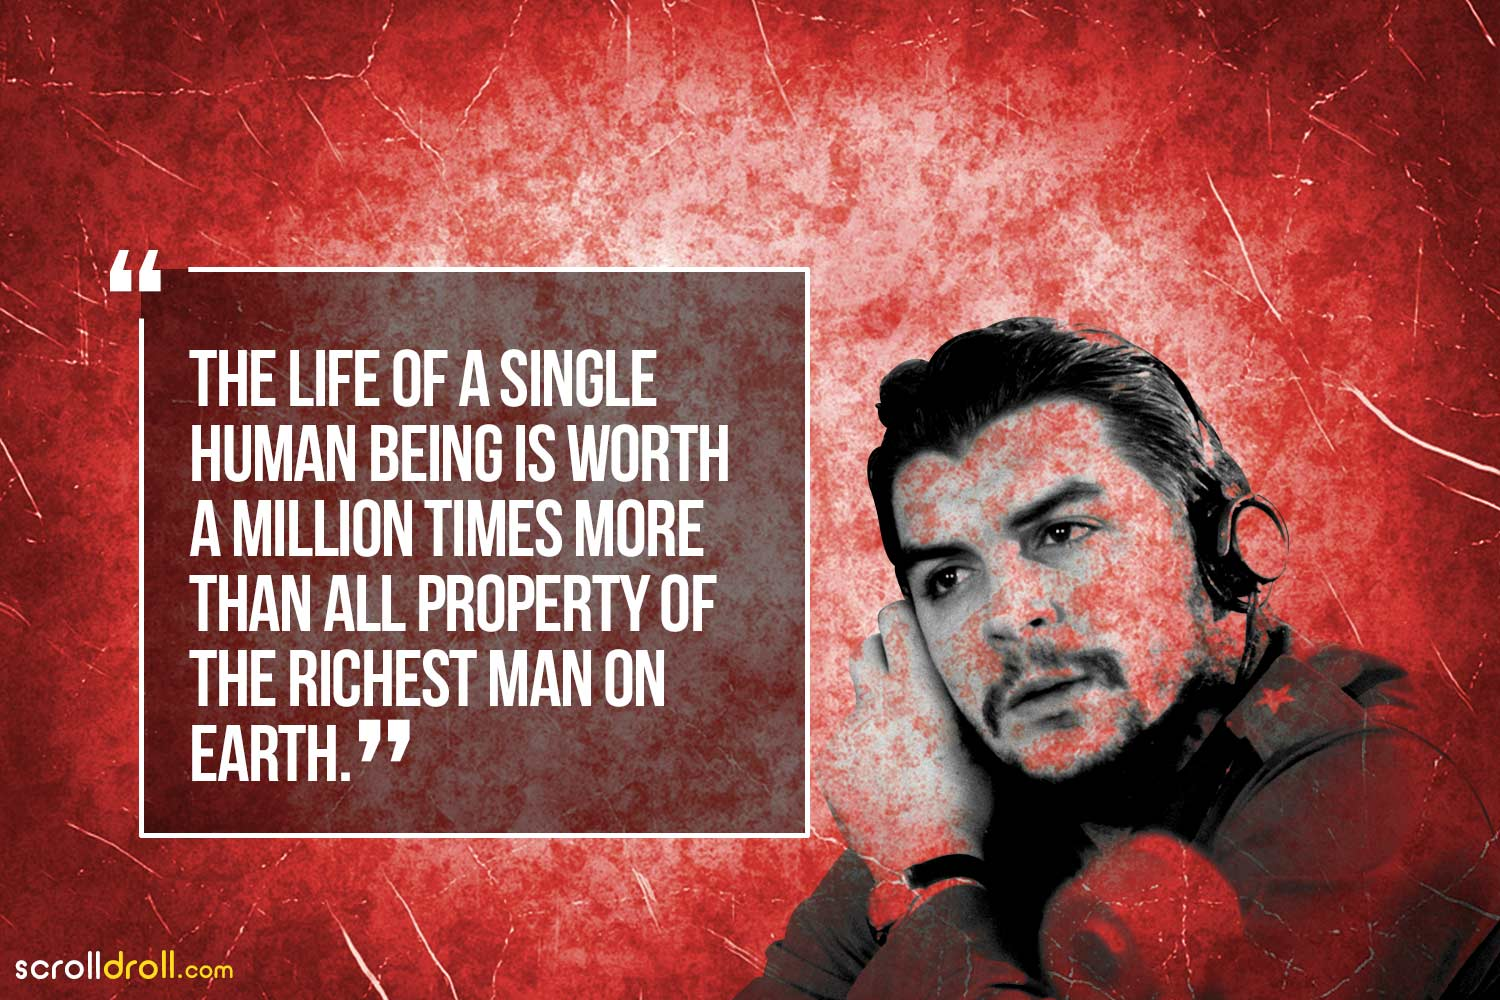 The life of a single human being is worth a million times more than all the property of the richest man on earth-Che Guevara